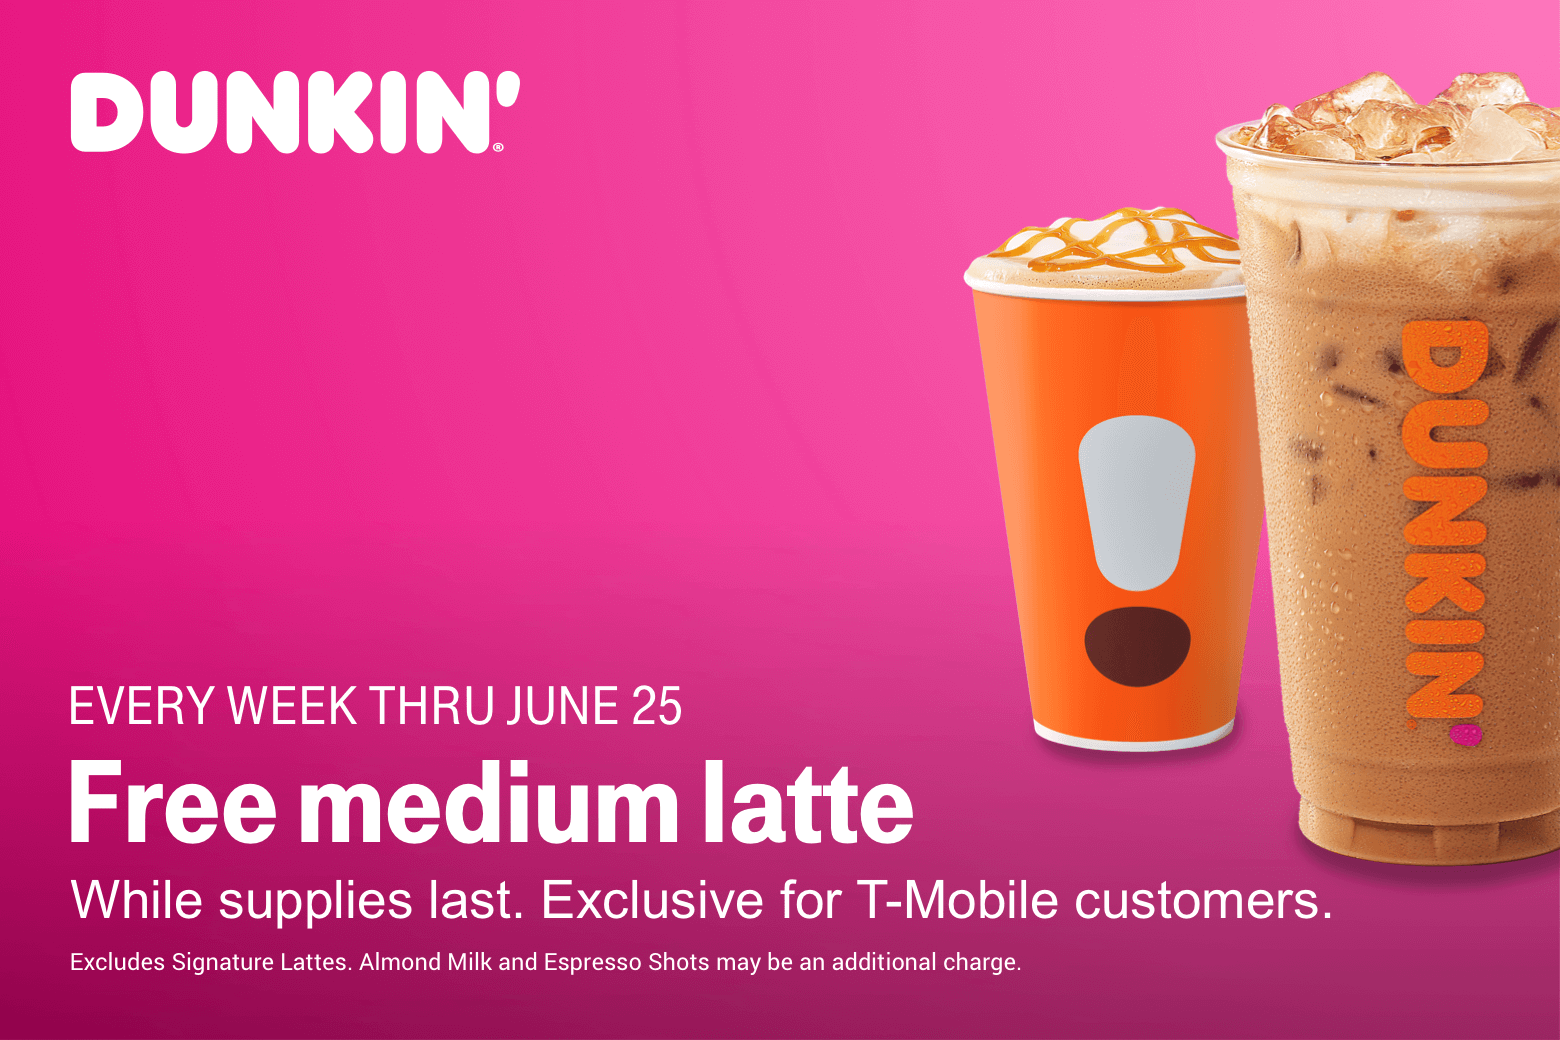 Dunkin. Every week thru June 25. Free medium latte. While supplies last. Exclusive for T-Mobile customers. Excludes signature lattes. Almond milk and and Espresso shots may be an additional charge.